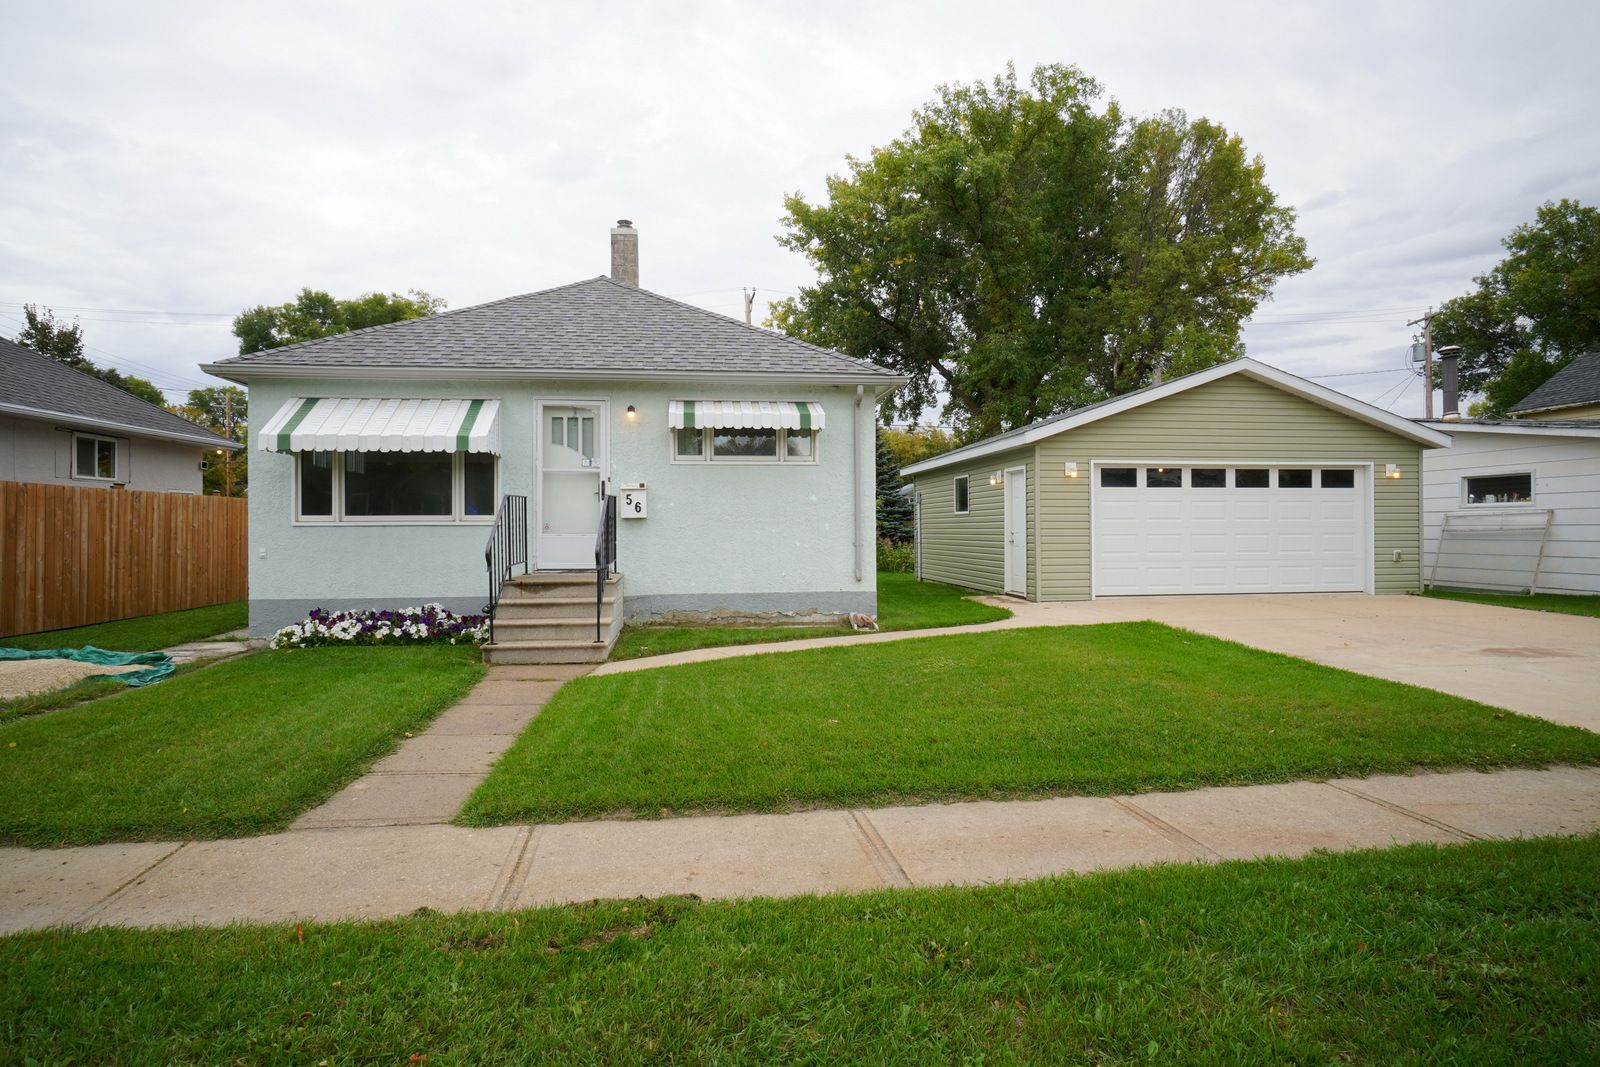 Main Photo: 56 8th Street NW in Portage la Prairie: House for sale : MLS®# 202122727